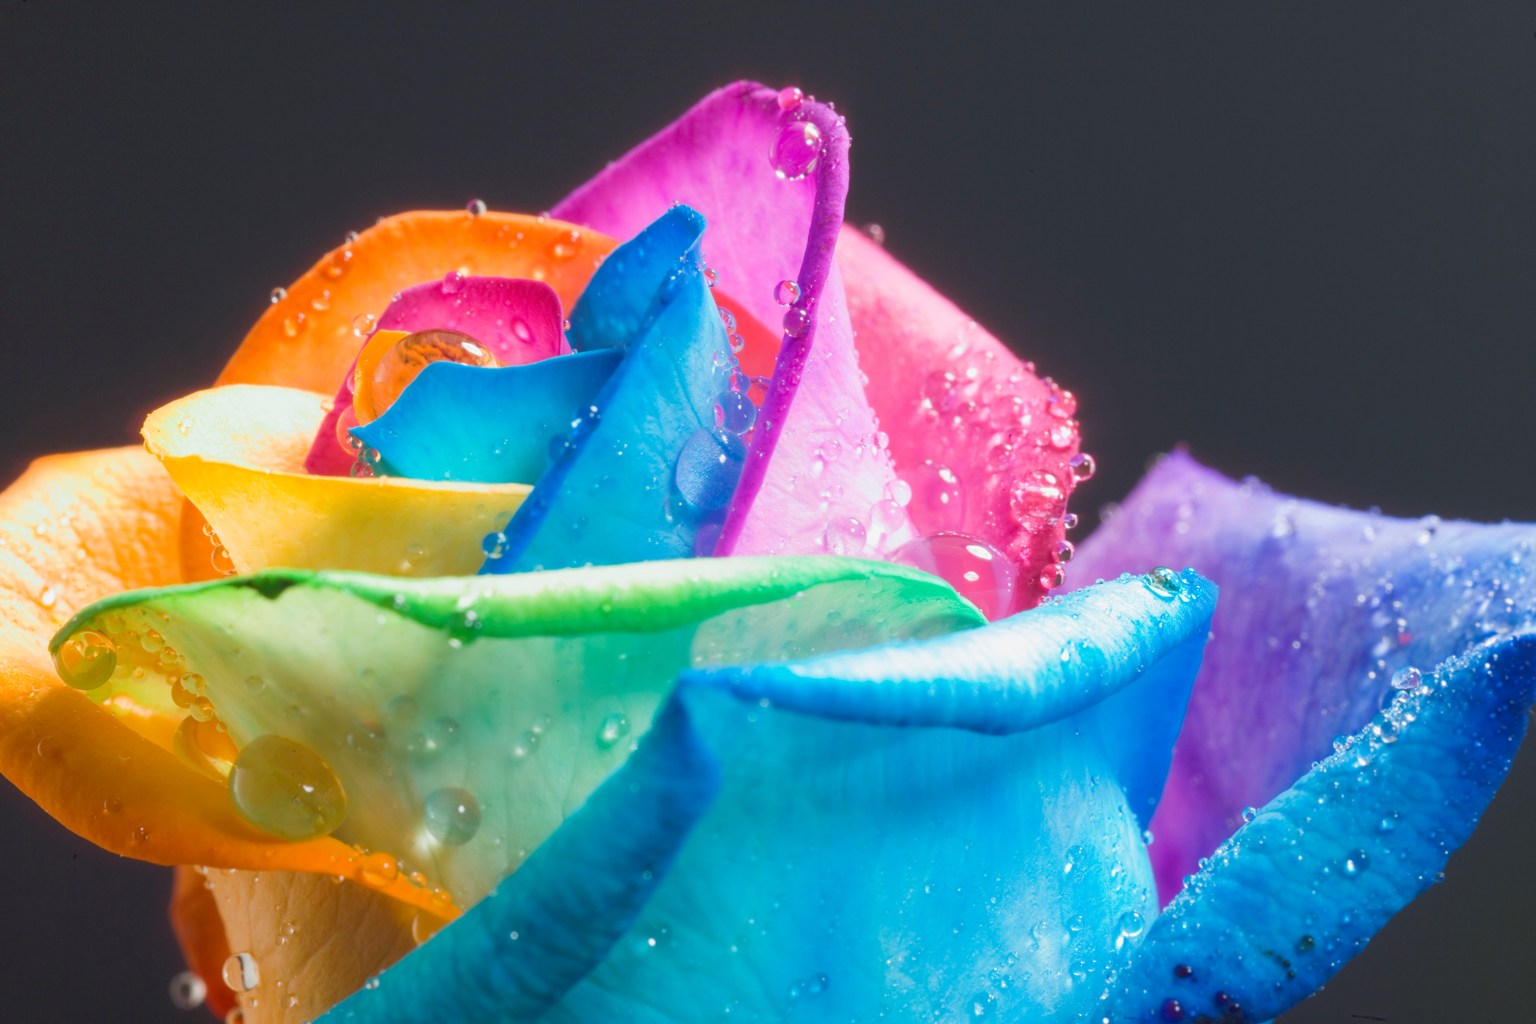 Rose and Photograph Wallpaper: Beautiful Rainbow rose ...